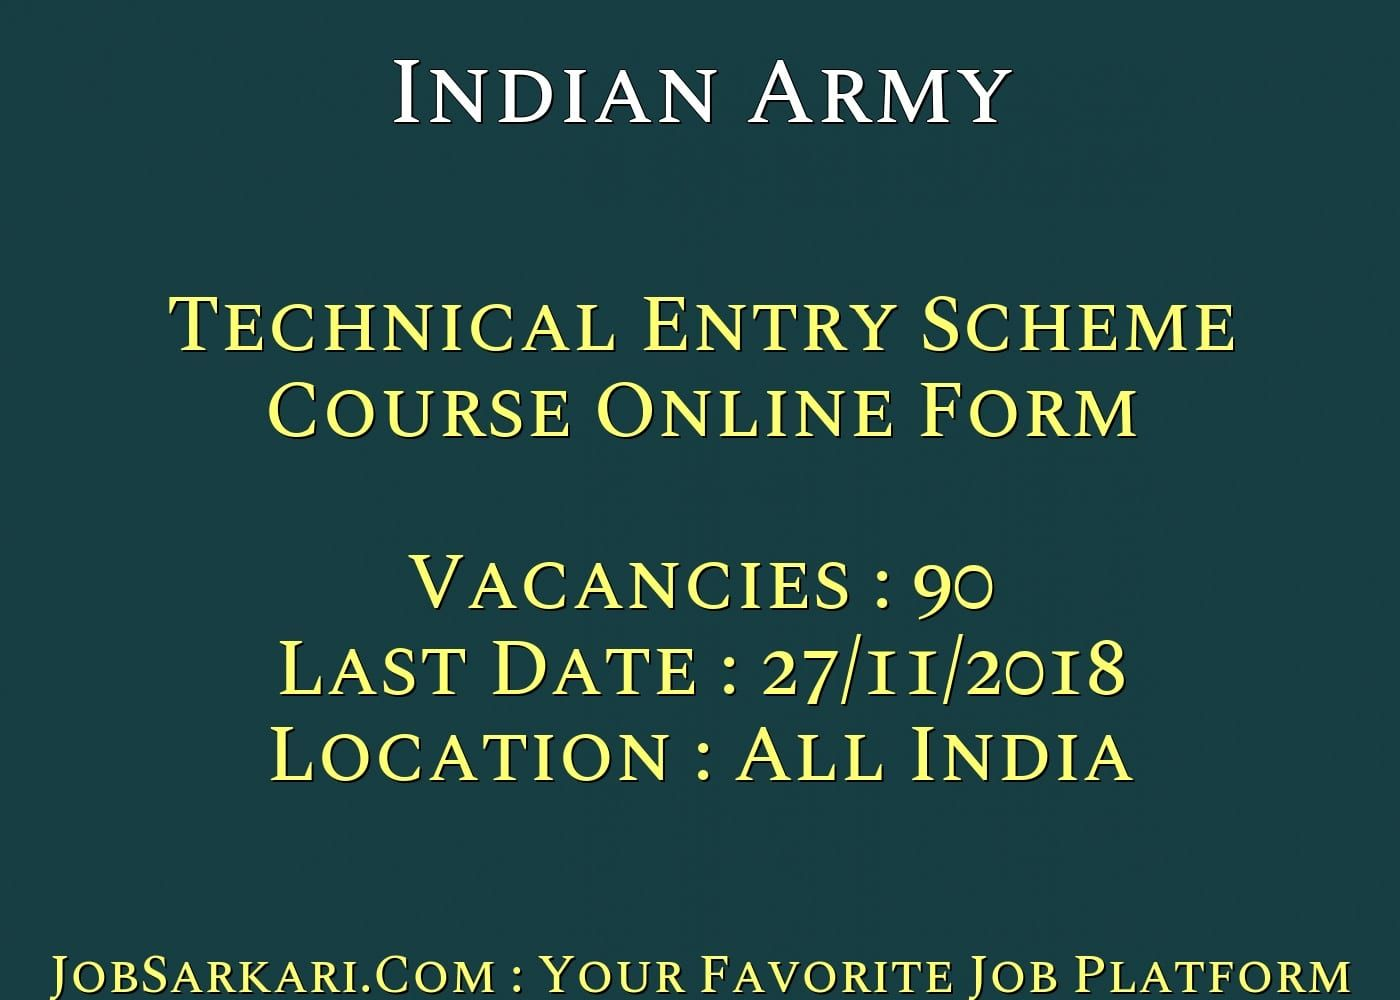 Indian Army Technical Entry Scheme Course Online Form